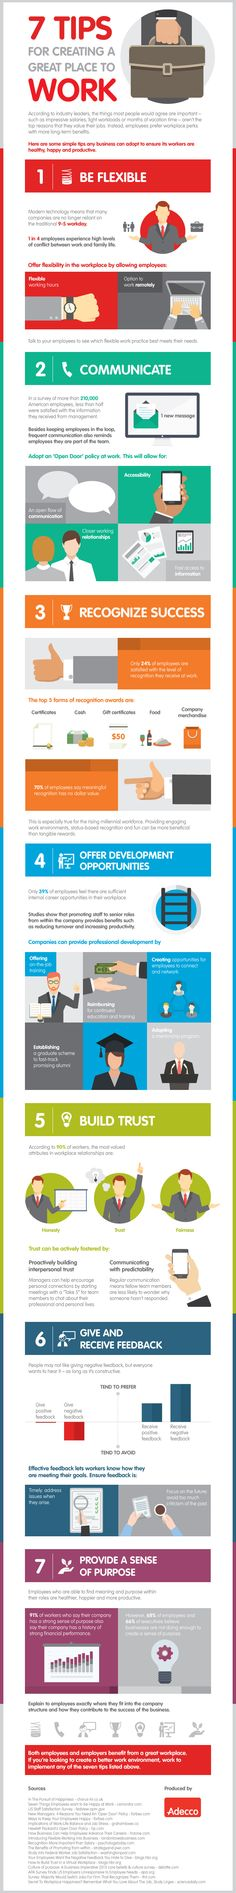 Infographic on How to create a great place to work